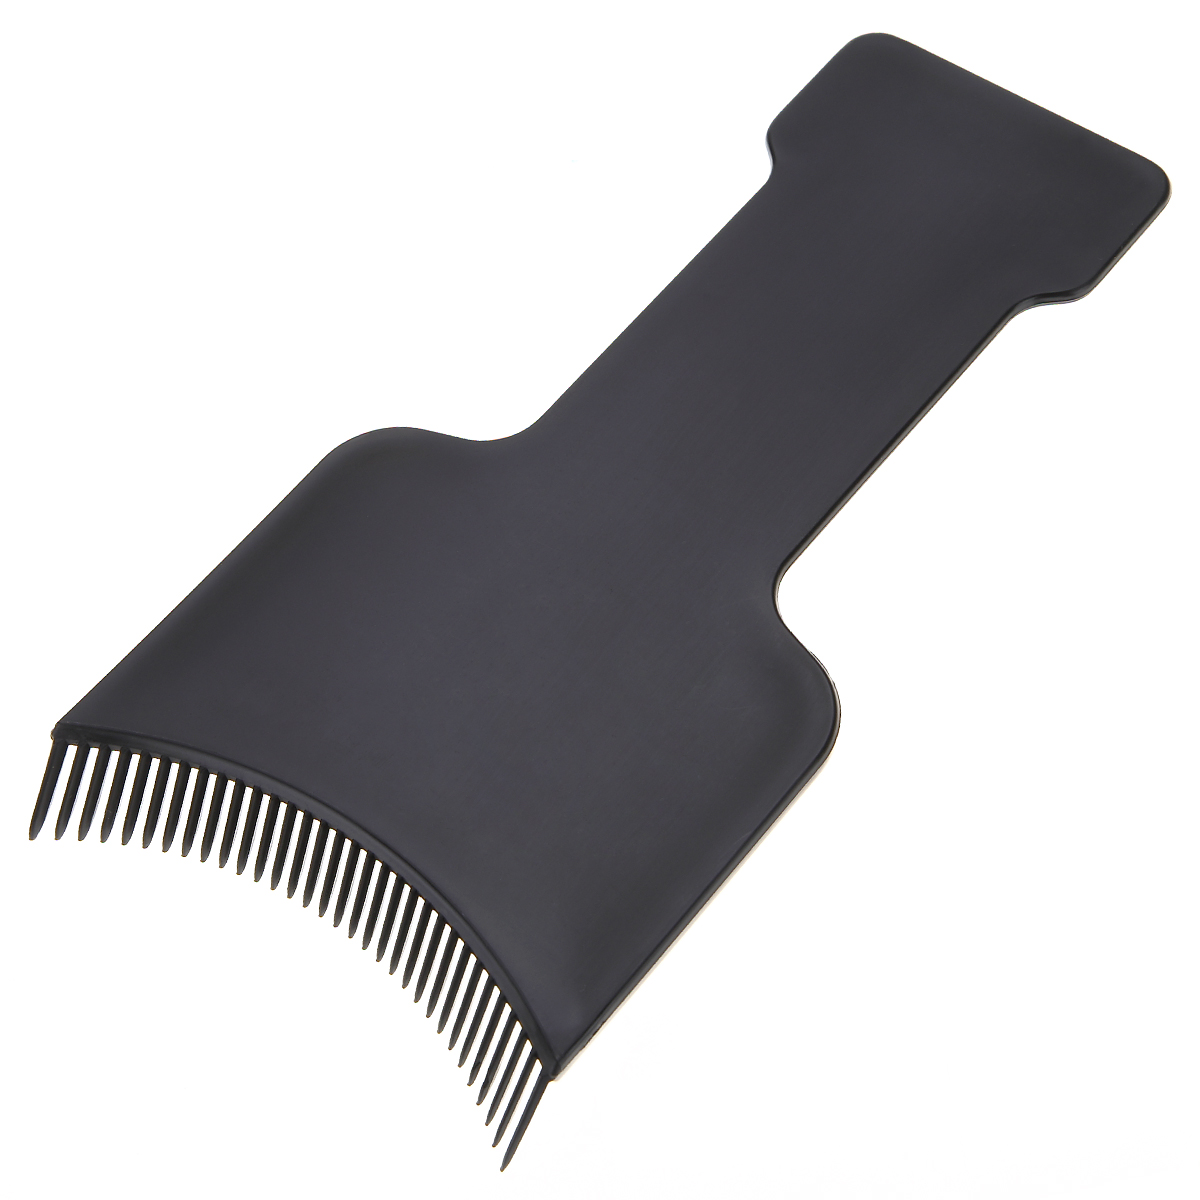 Online coloring tools - Professional Salon Hair Coloring Dye Diy Color Dyeing Brush Comb Tint Hairdressing Styling Tool For Personal Or Hairdresser